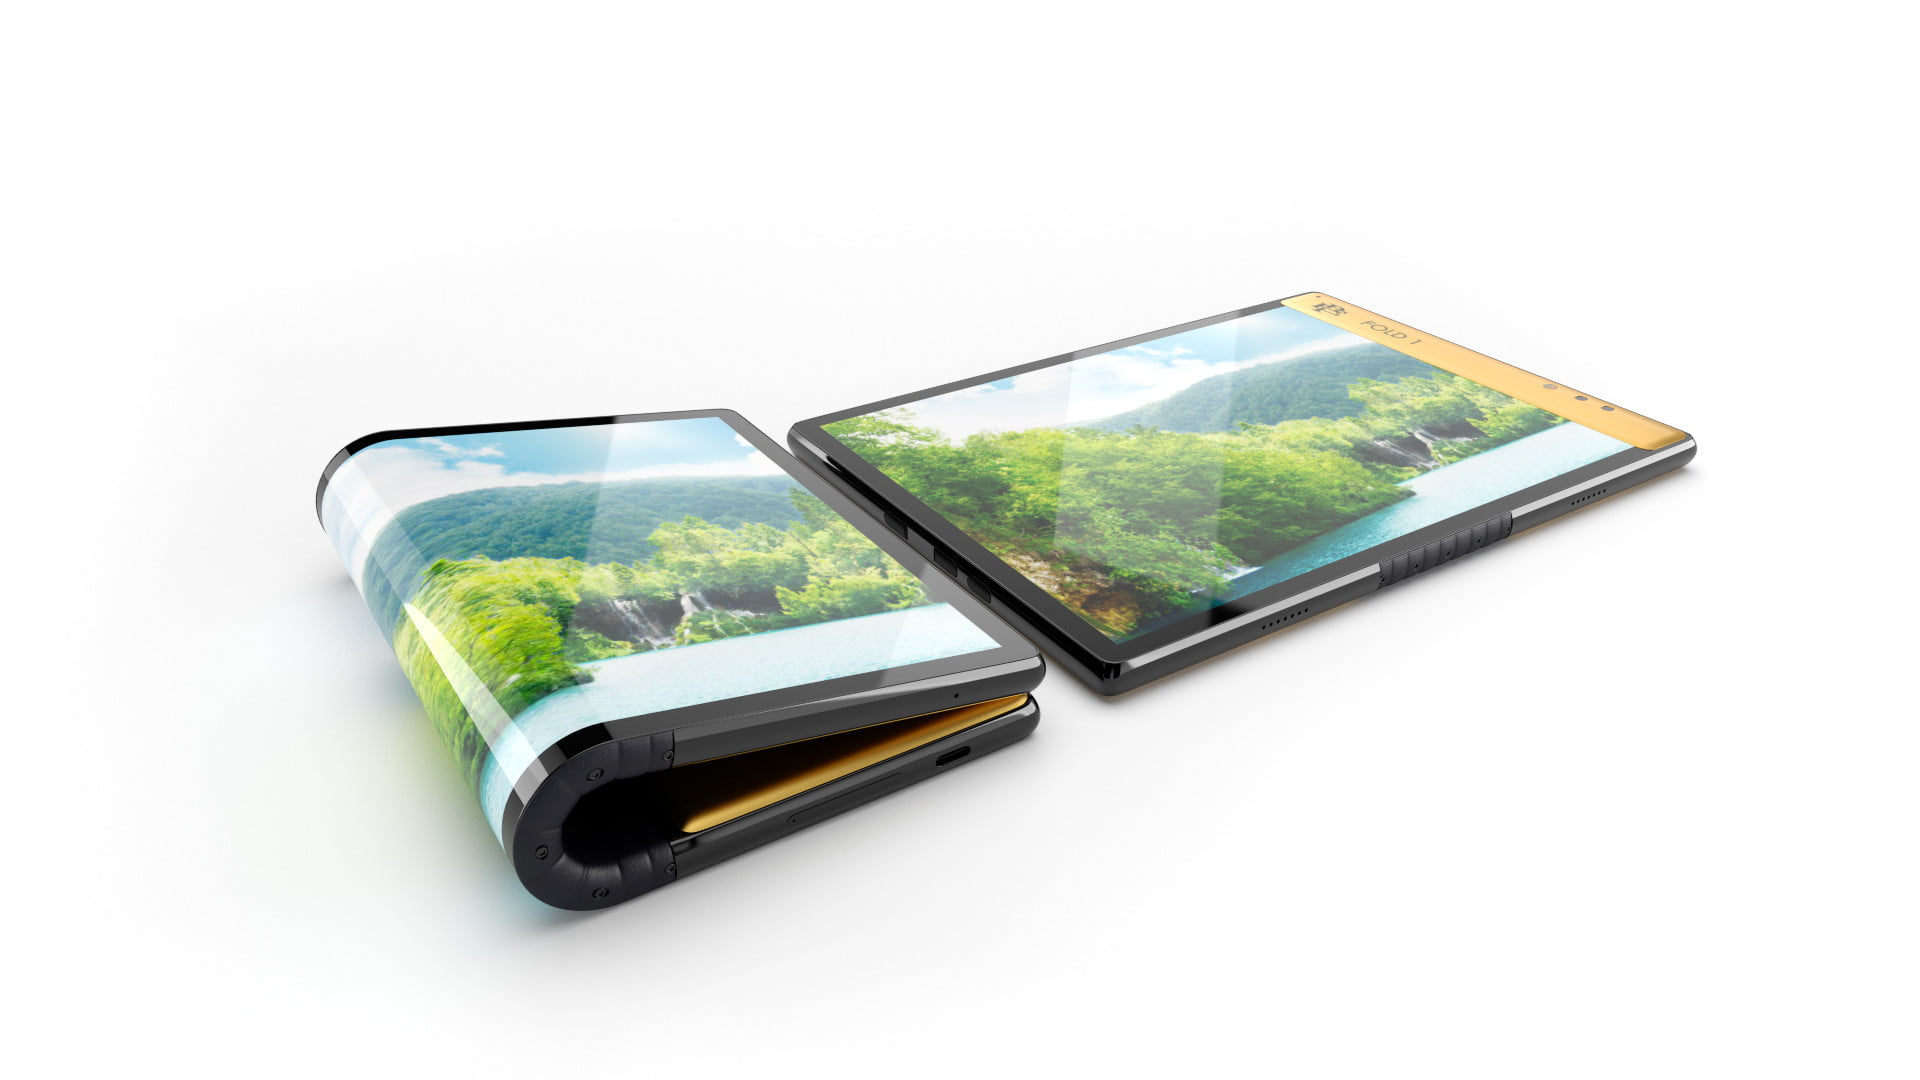 Foldable Phones: How Samsung, LG, Huawei, and More Will Reshape the Smartphone - Крышка